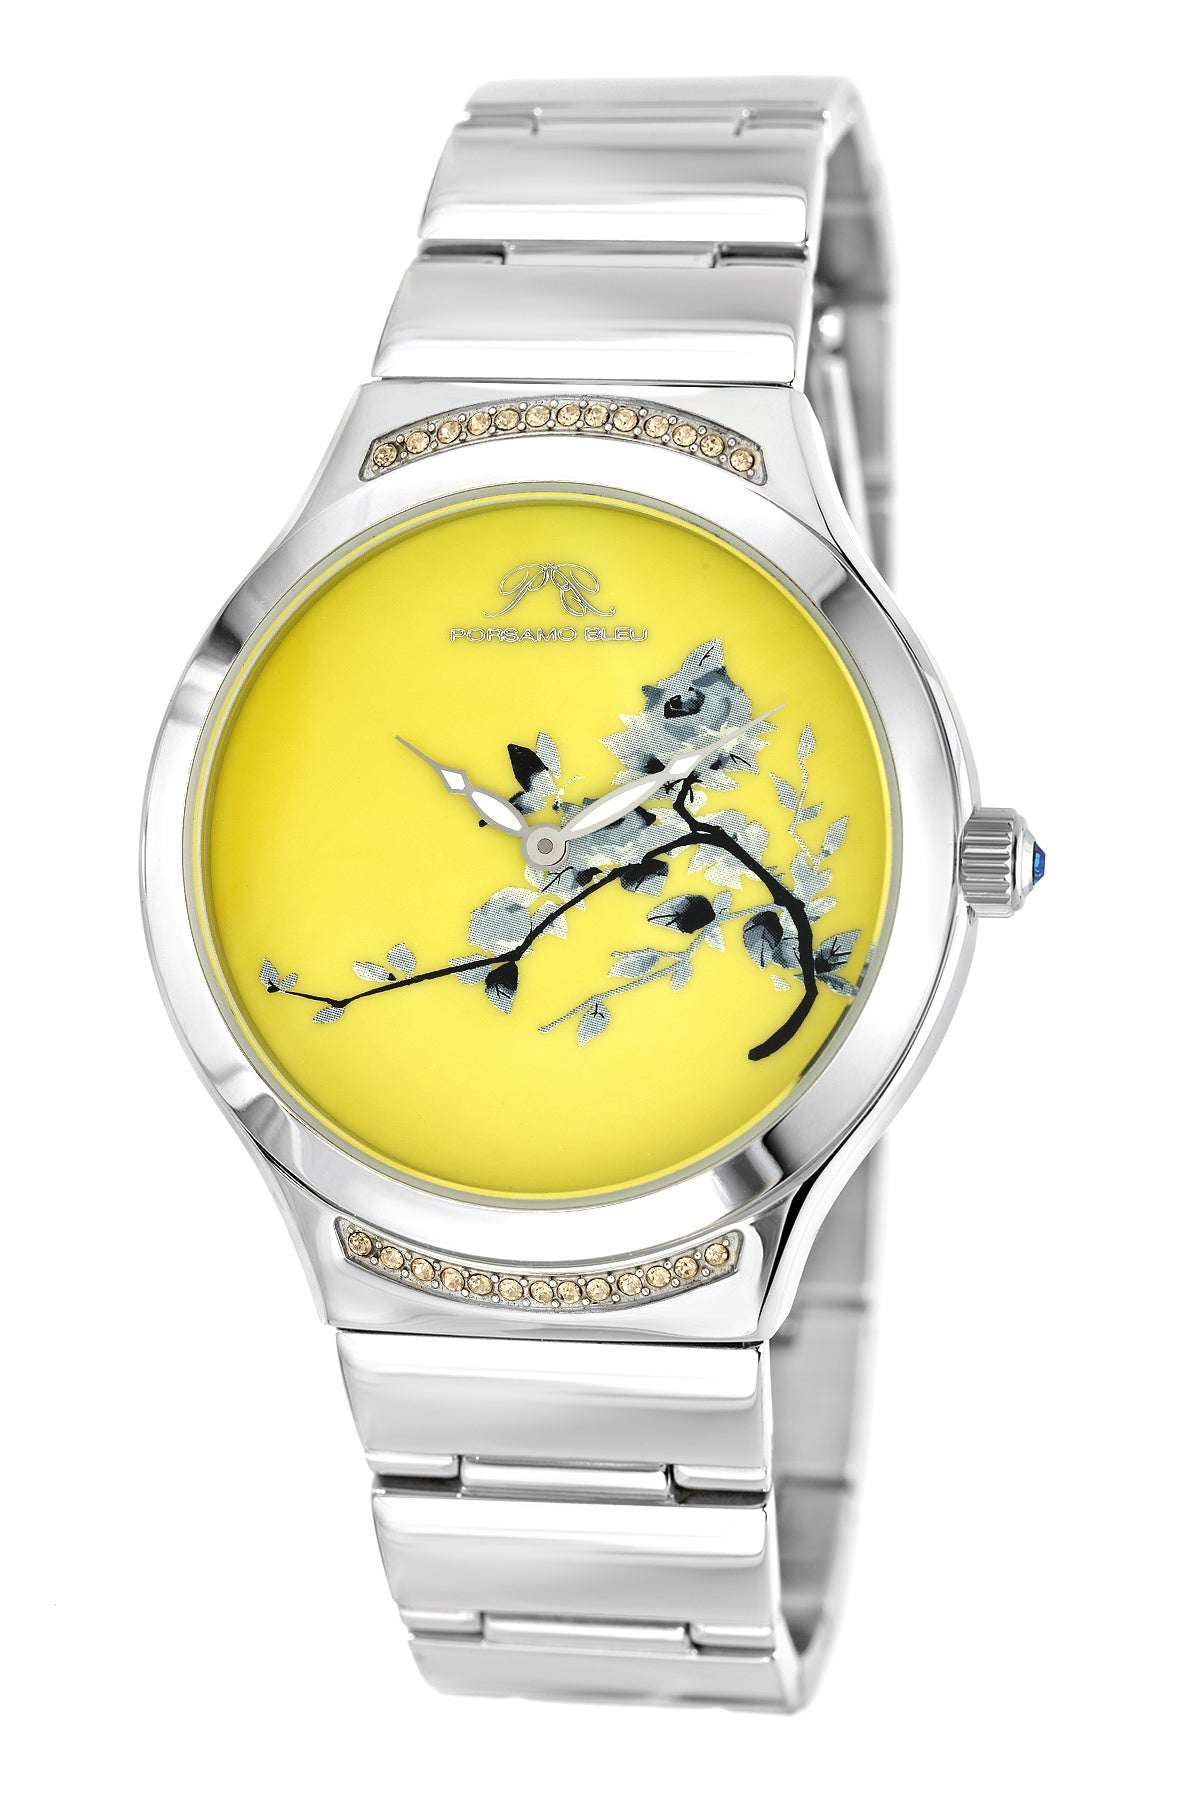 Porsmao Bleu Carmen luxury women's stainless steel watch, silver, yellow 991DCAS